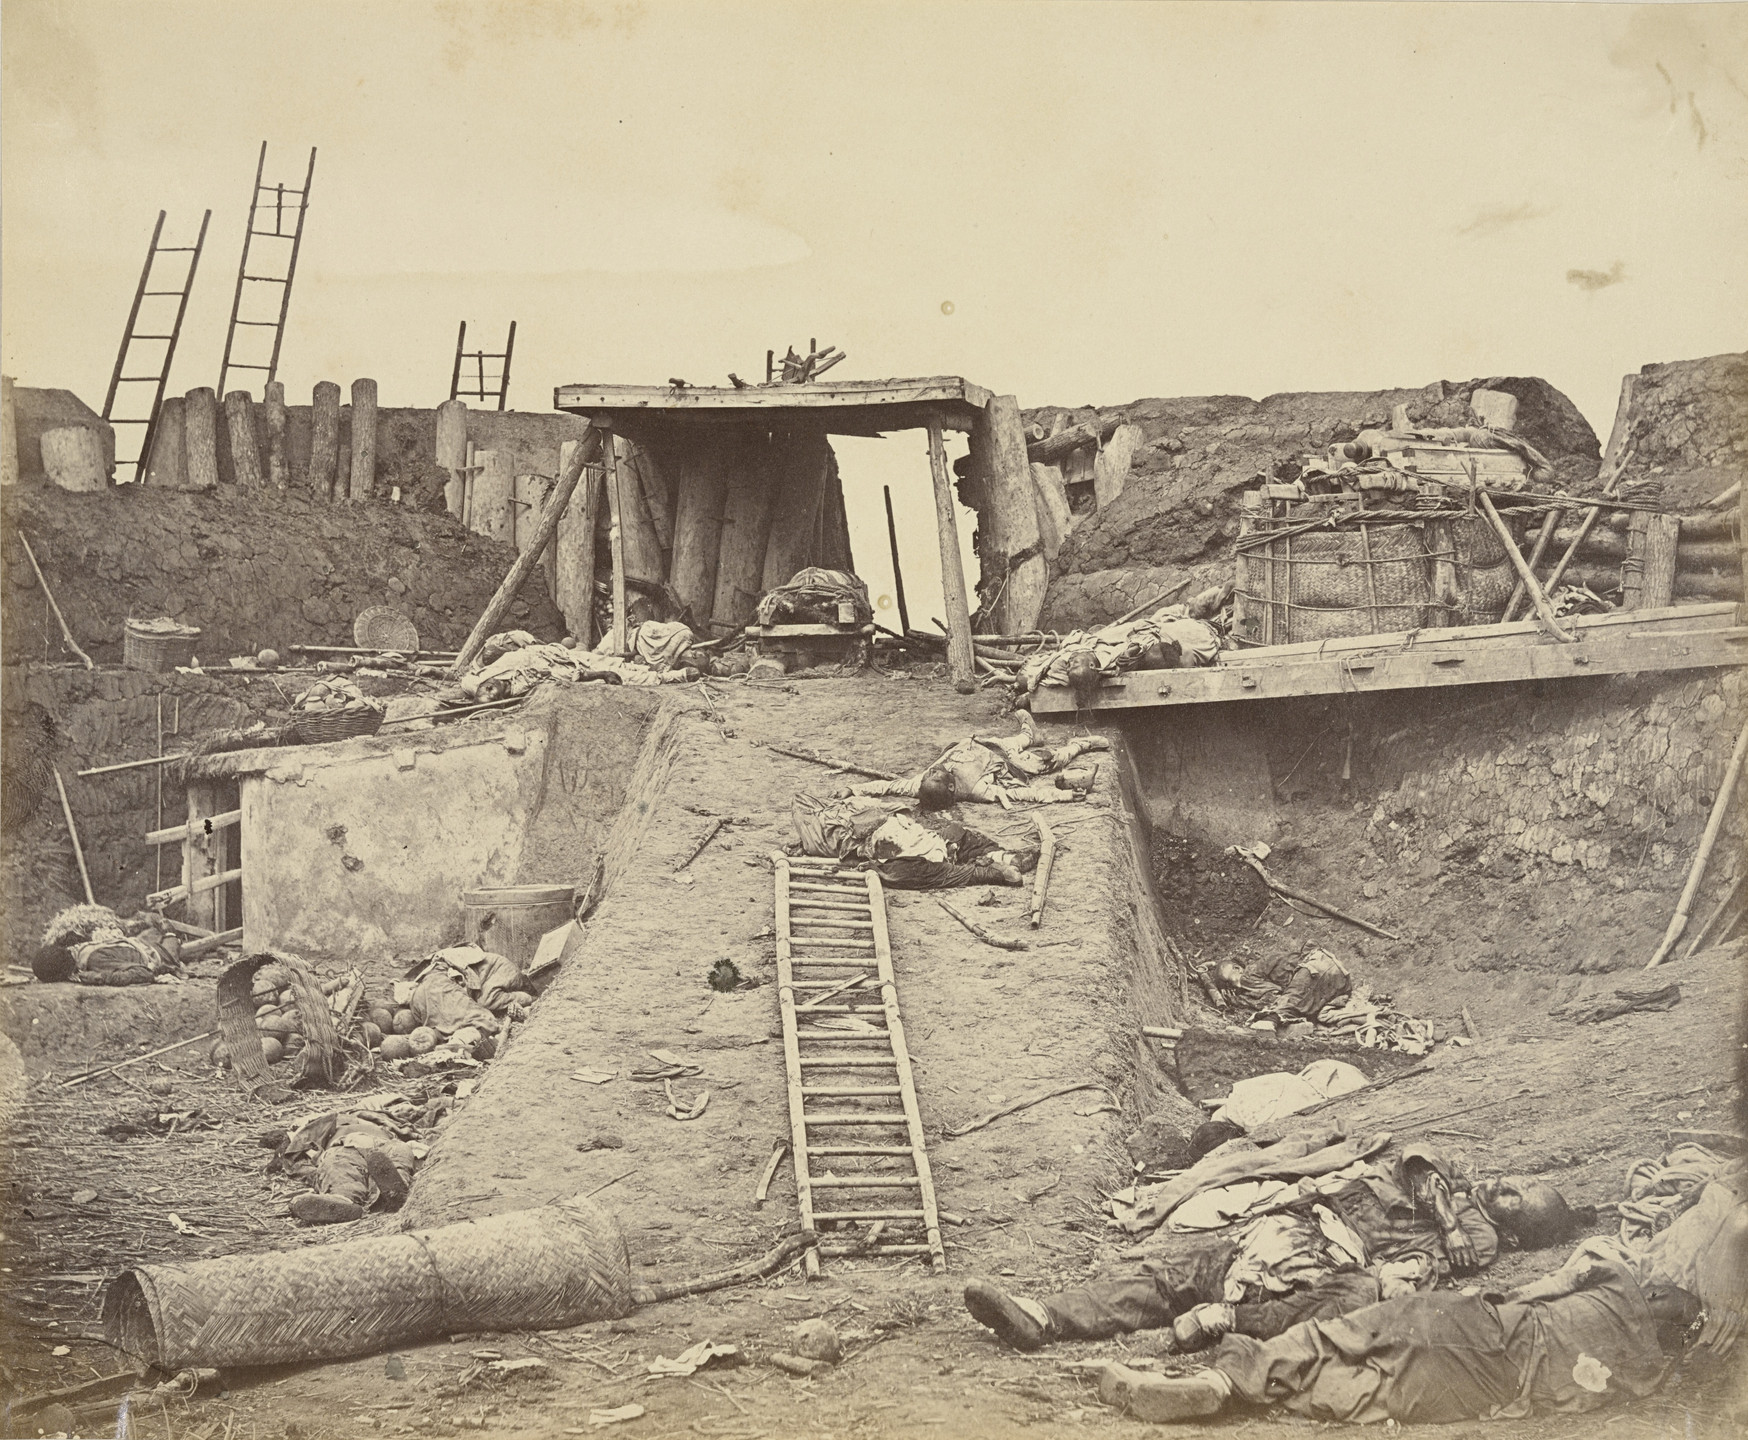 Felice Beato. Interior of the Angle of North Fort. 21 August, 1860